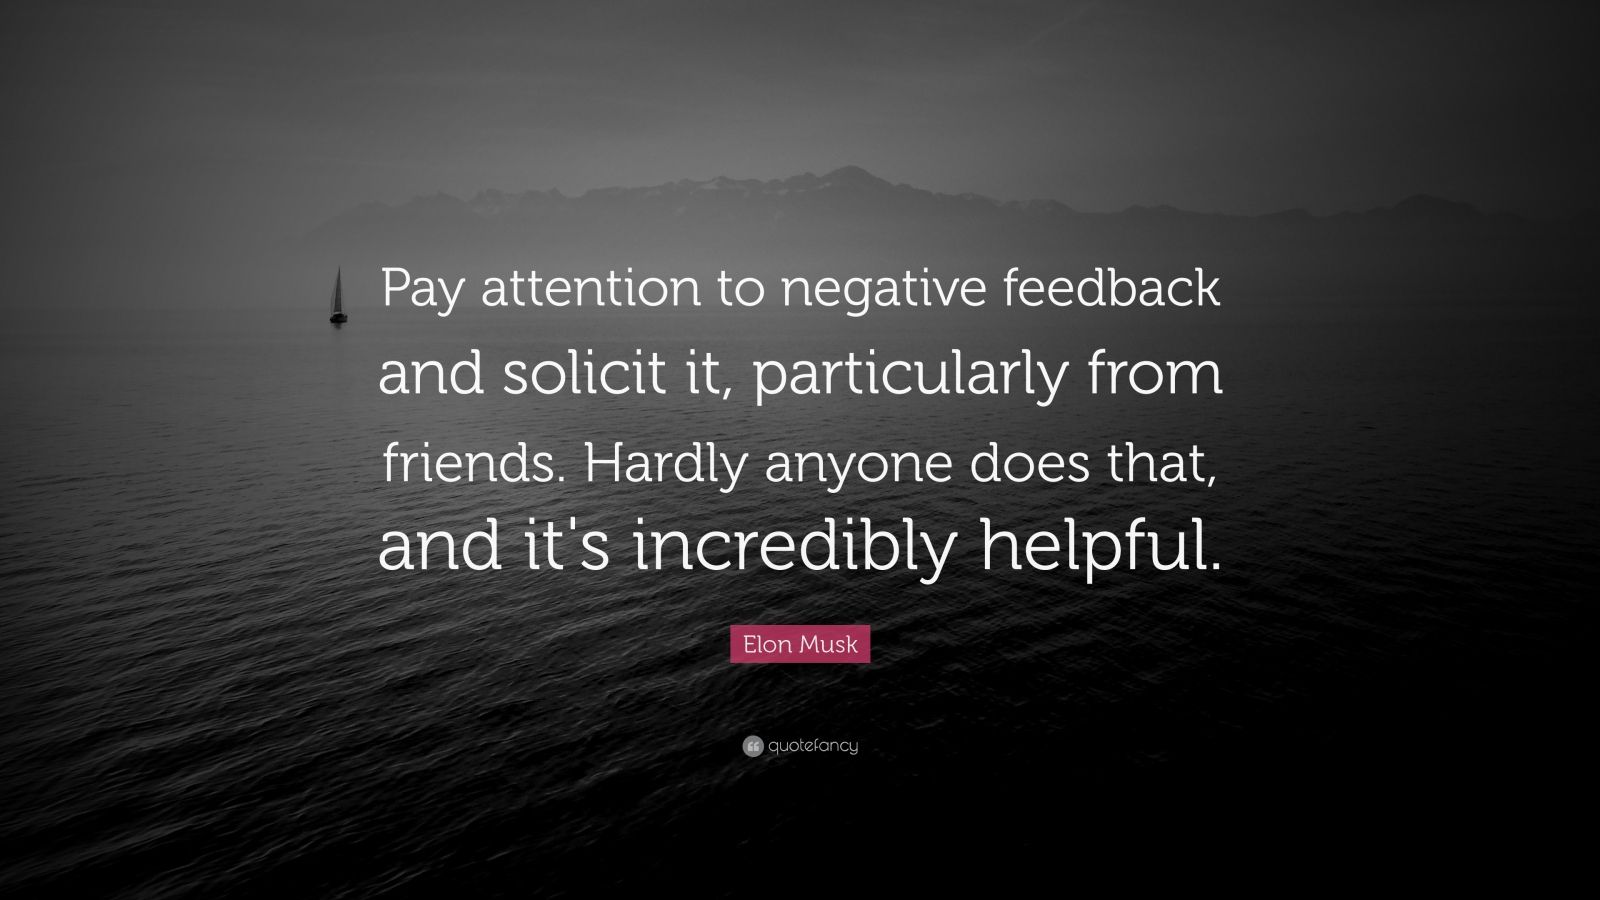 "Elon Musk Quote: ""Pay attention to negative feedback and solicit it, particularly from friends. Hardly anyone does that, and it's incredibly helpful."""